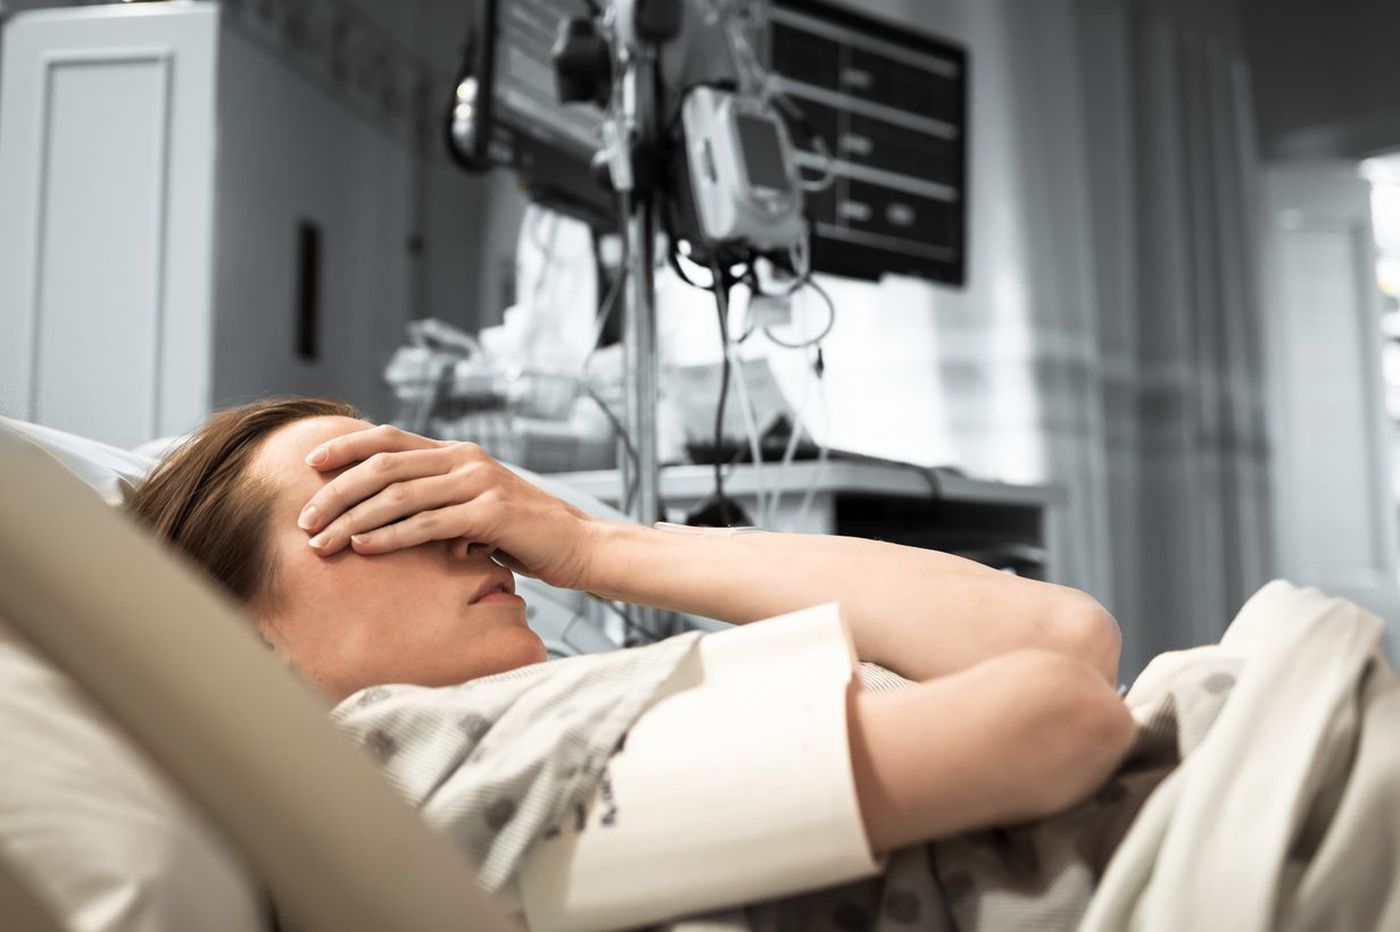 How can emergency departments better care for sexual assault victims?